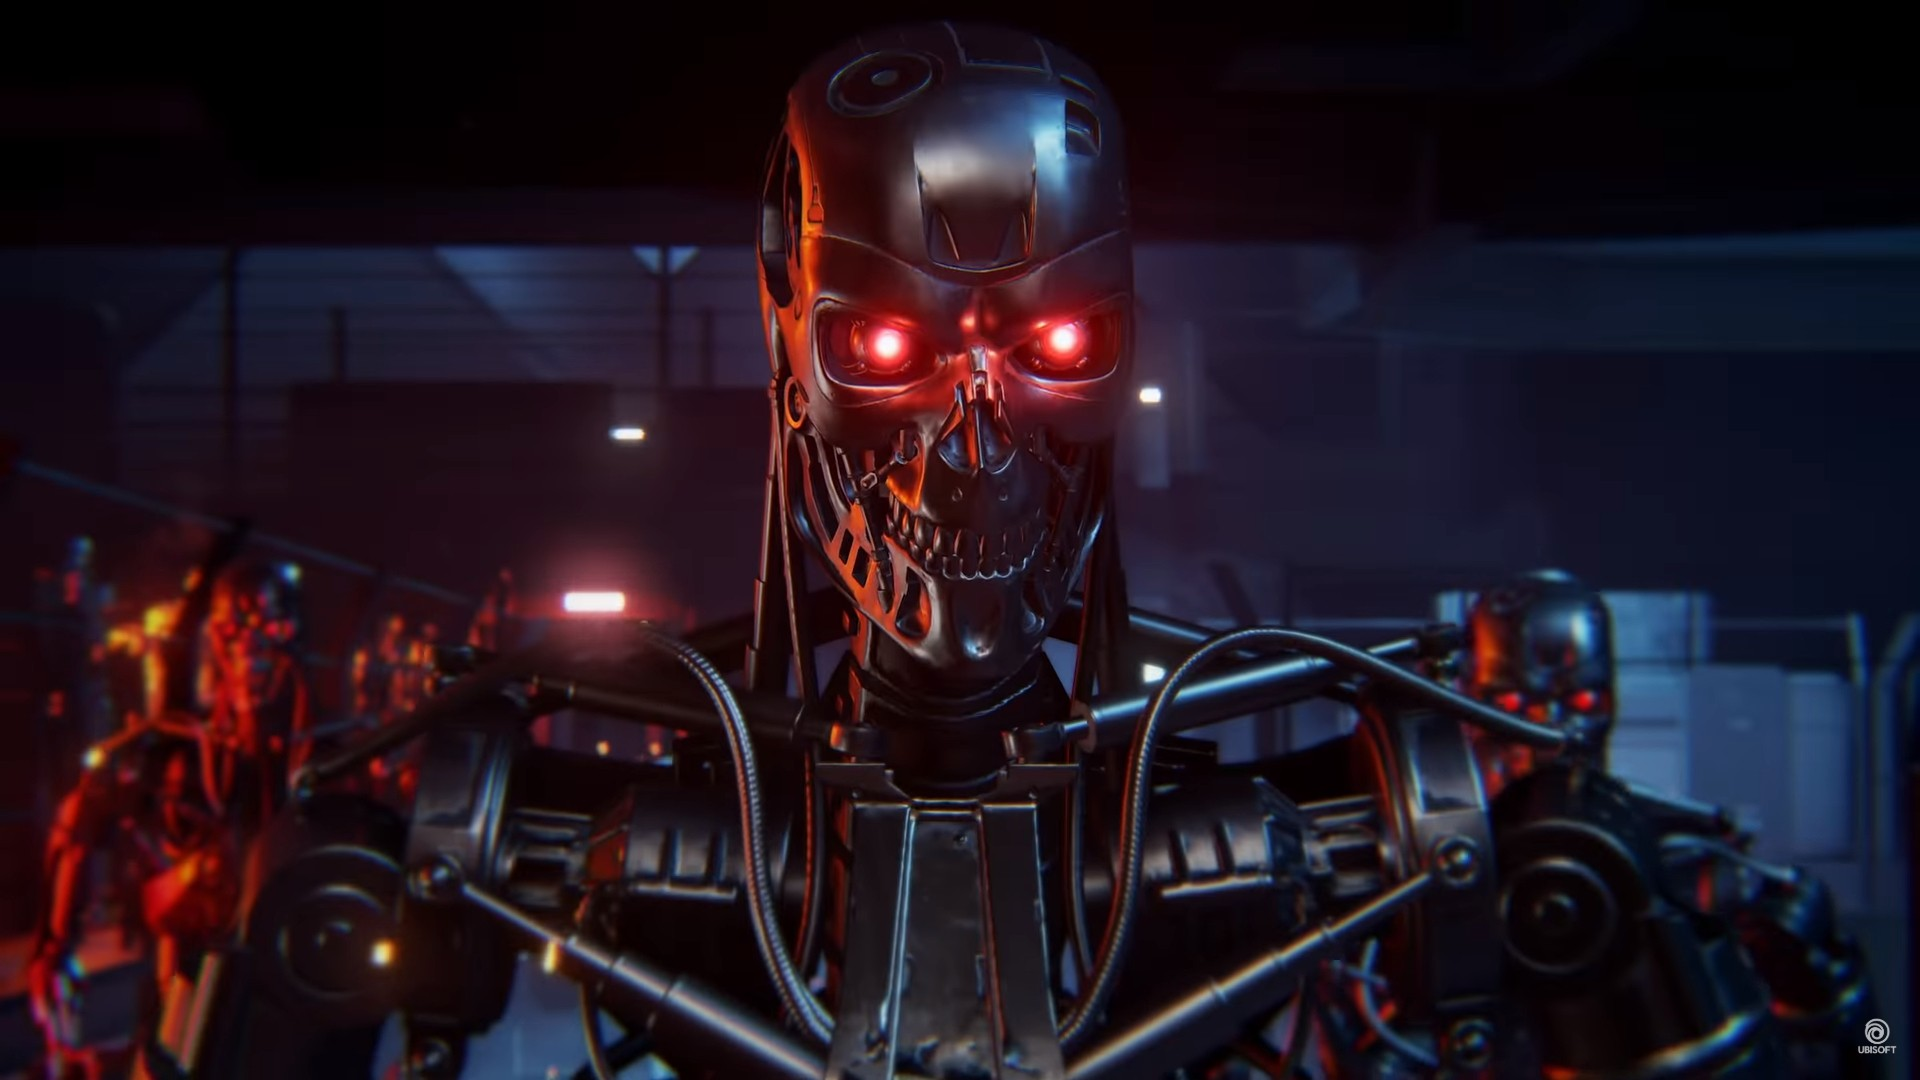 Ghost Recon Breakpoint The Terminator Event Starts Tomorrow, Gets Full Trailer